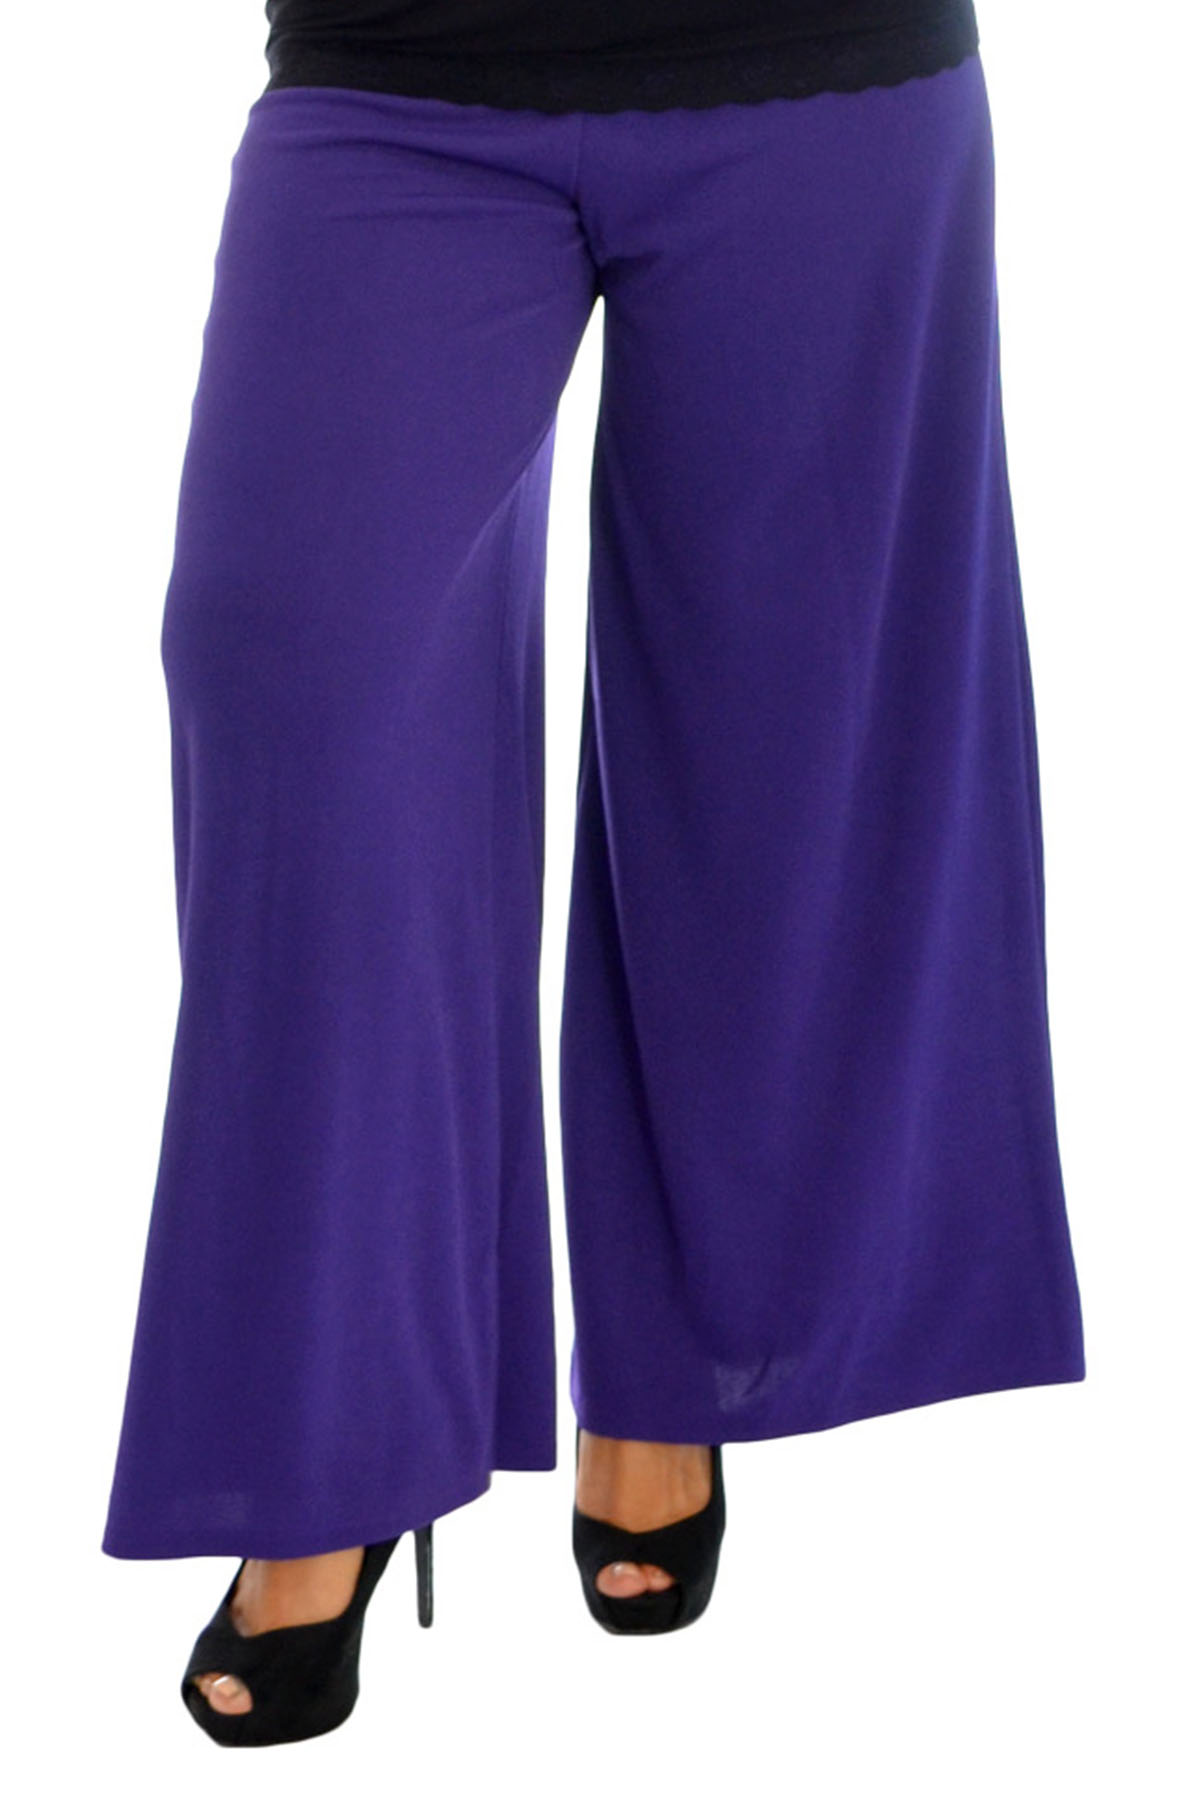 Women's Plus Stretch Comfort Waist Pants by Blair, Tan, Size 26 Wide Width. Pants by Blair. Comes in Khaki, Size makeshop-mdrcky9h.ga AND feel great all day - the hidden, move-with-you stretch waistband makes all the difference! Zip fly with button closure; front pockets and belt loops.